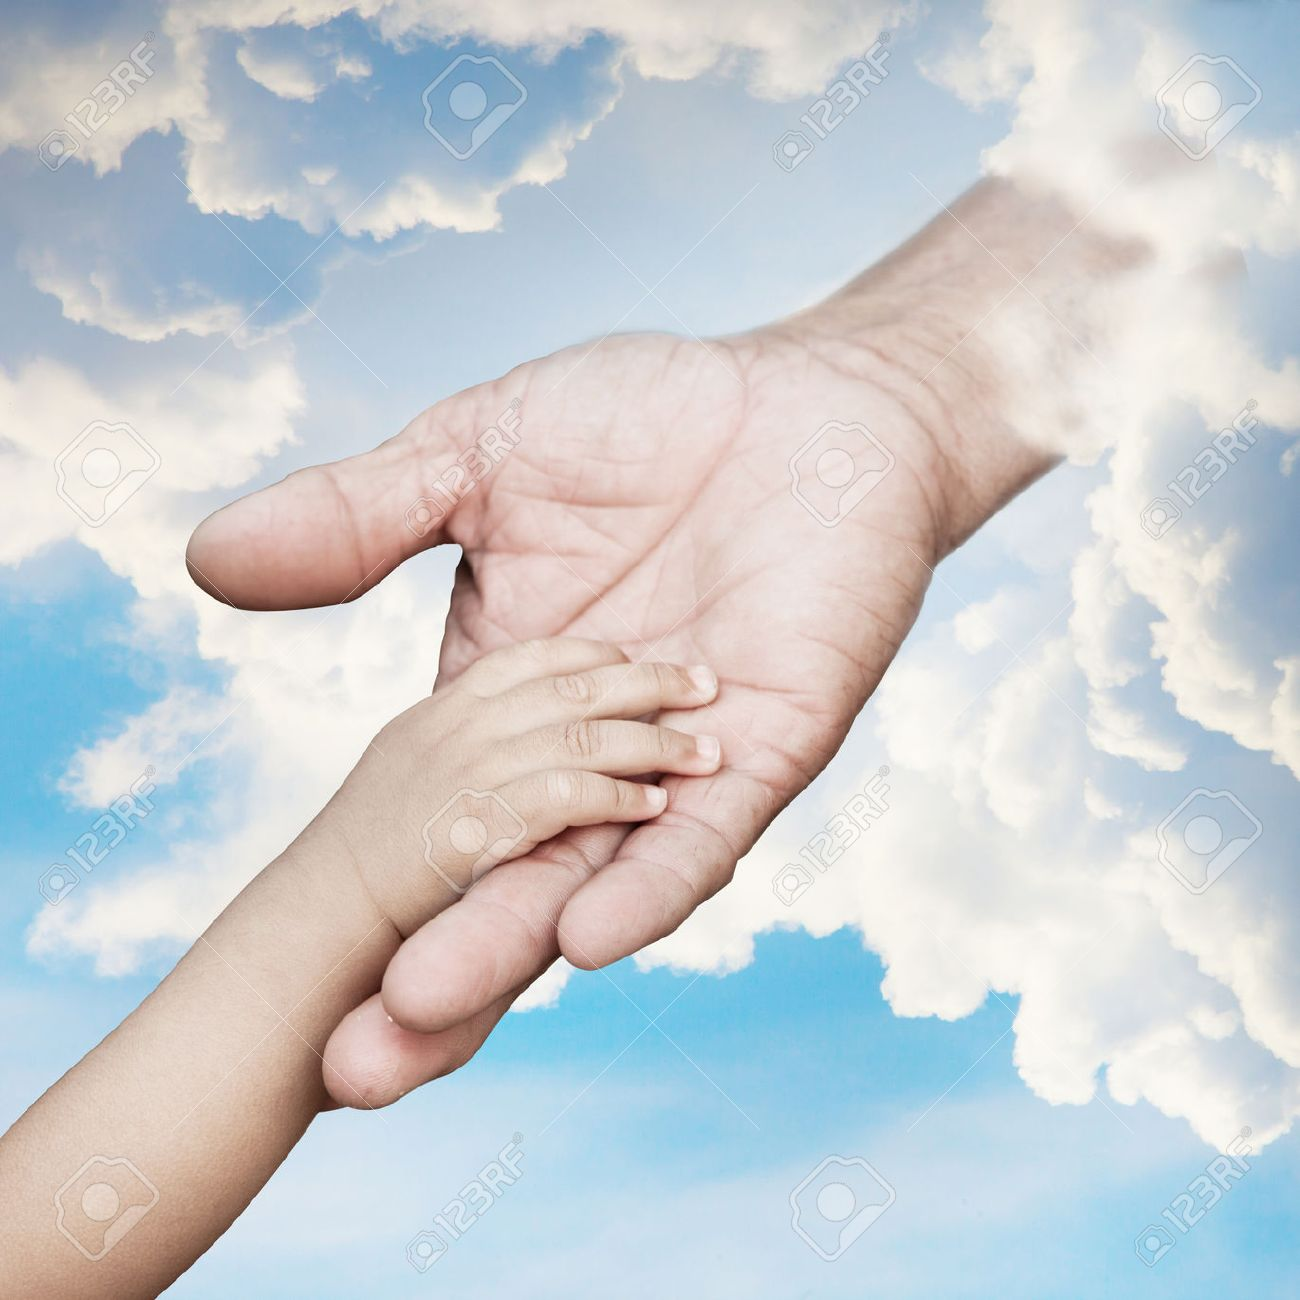 Baby Hand Reach Out To God Stock Photo, Picture And Royalty Free Image.  Image 23478378.